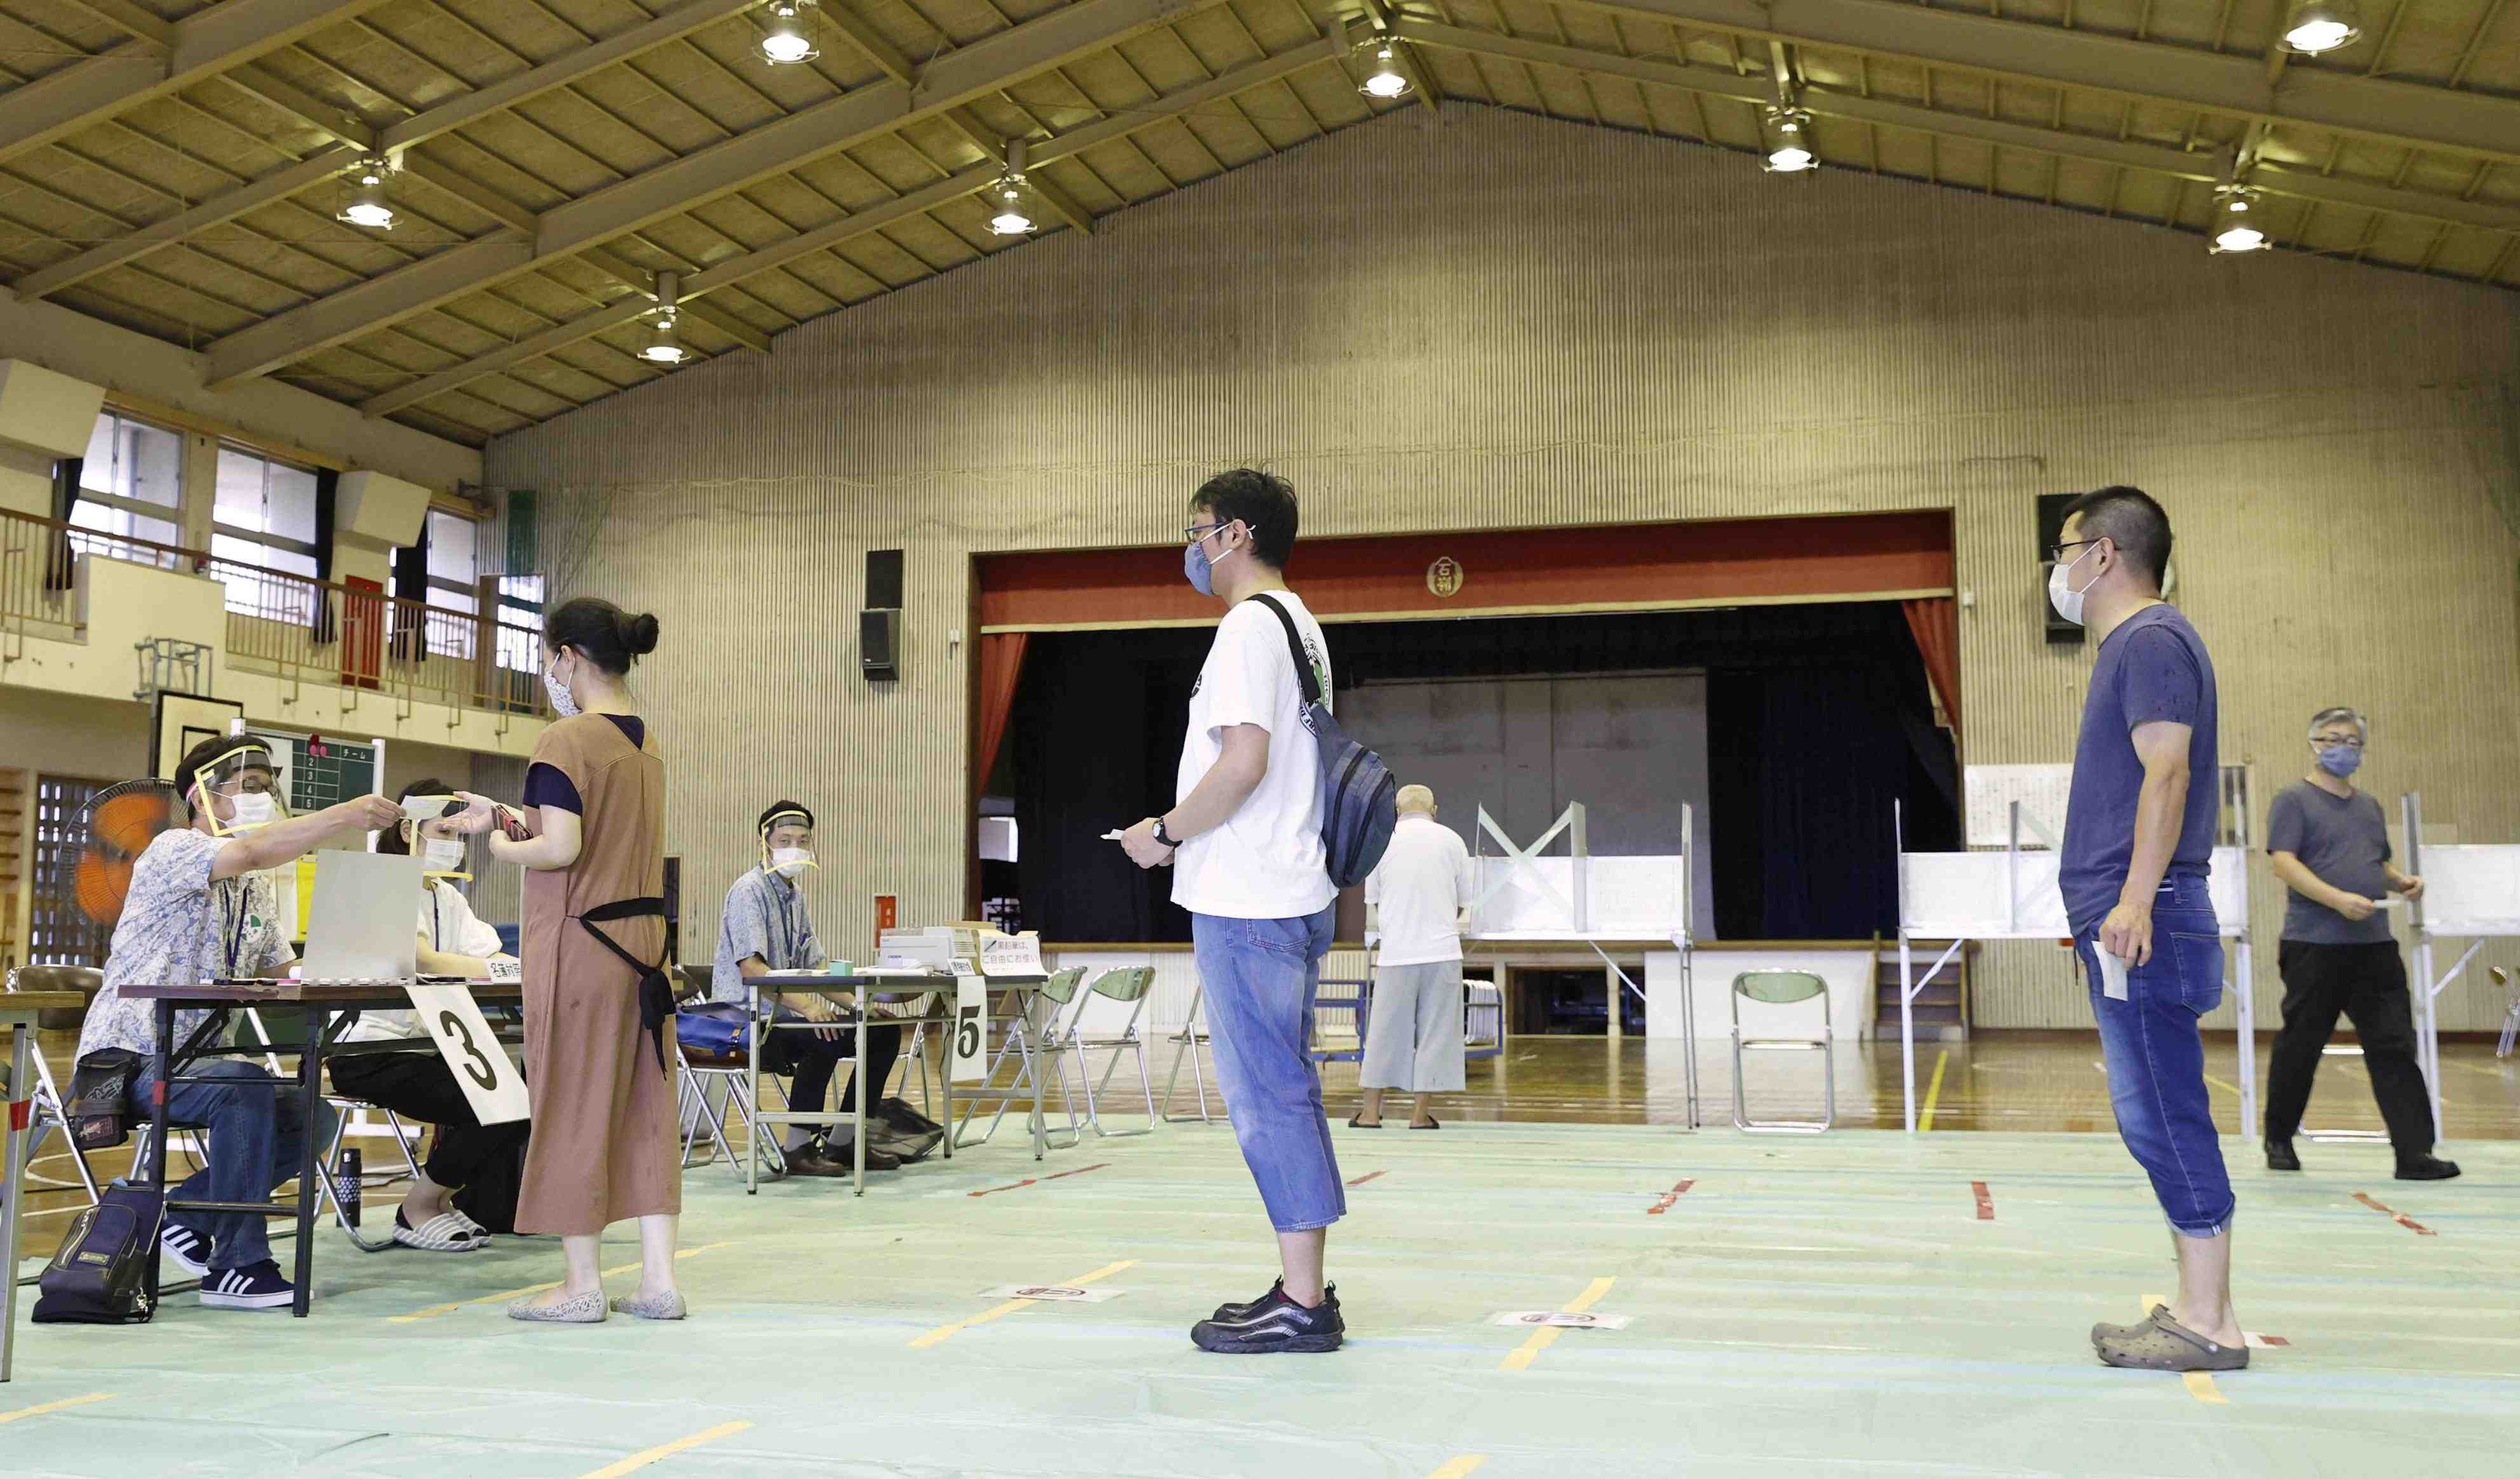 Japan Election Voting stations 003